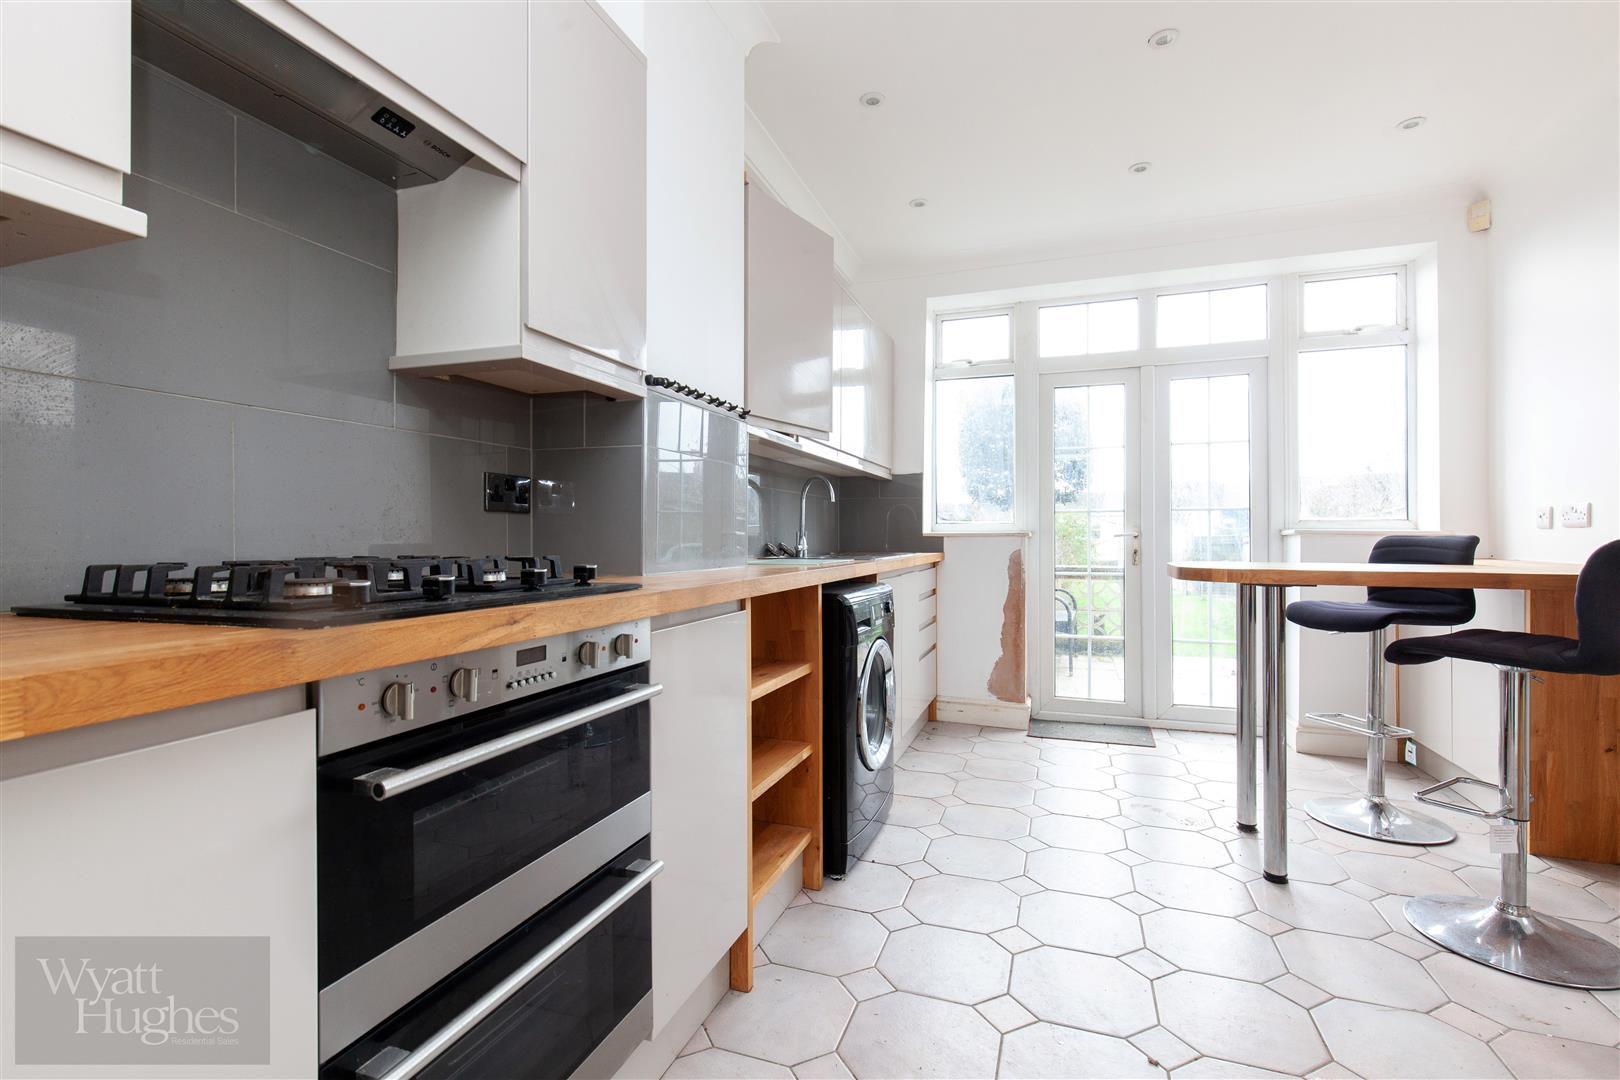 3 bed end-of-terrace-house for sale in Burry Road, St. Leonards-On-Sea  - Property Image 14